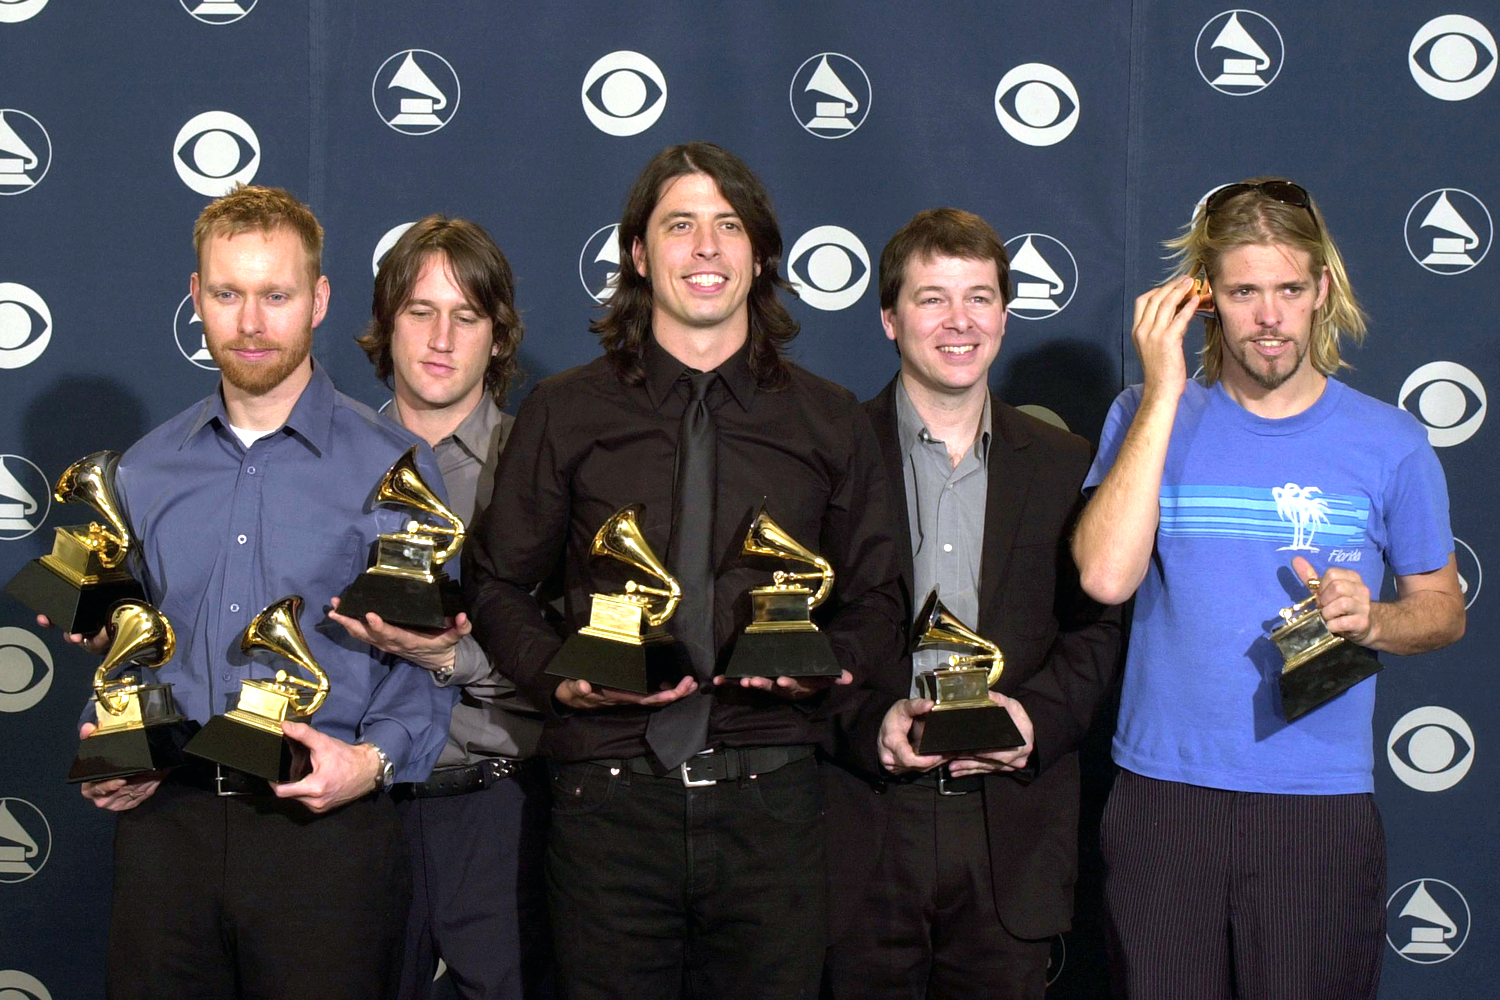 The Foo Fighters pose with their awards backstage at the 43rd Annual Grammy Awards